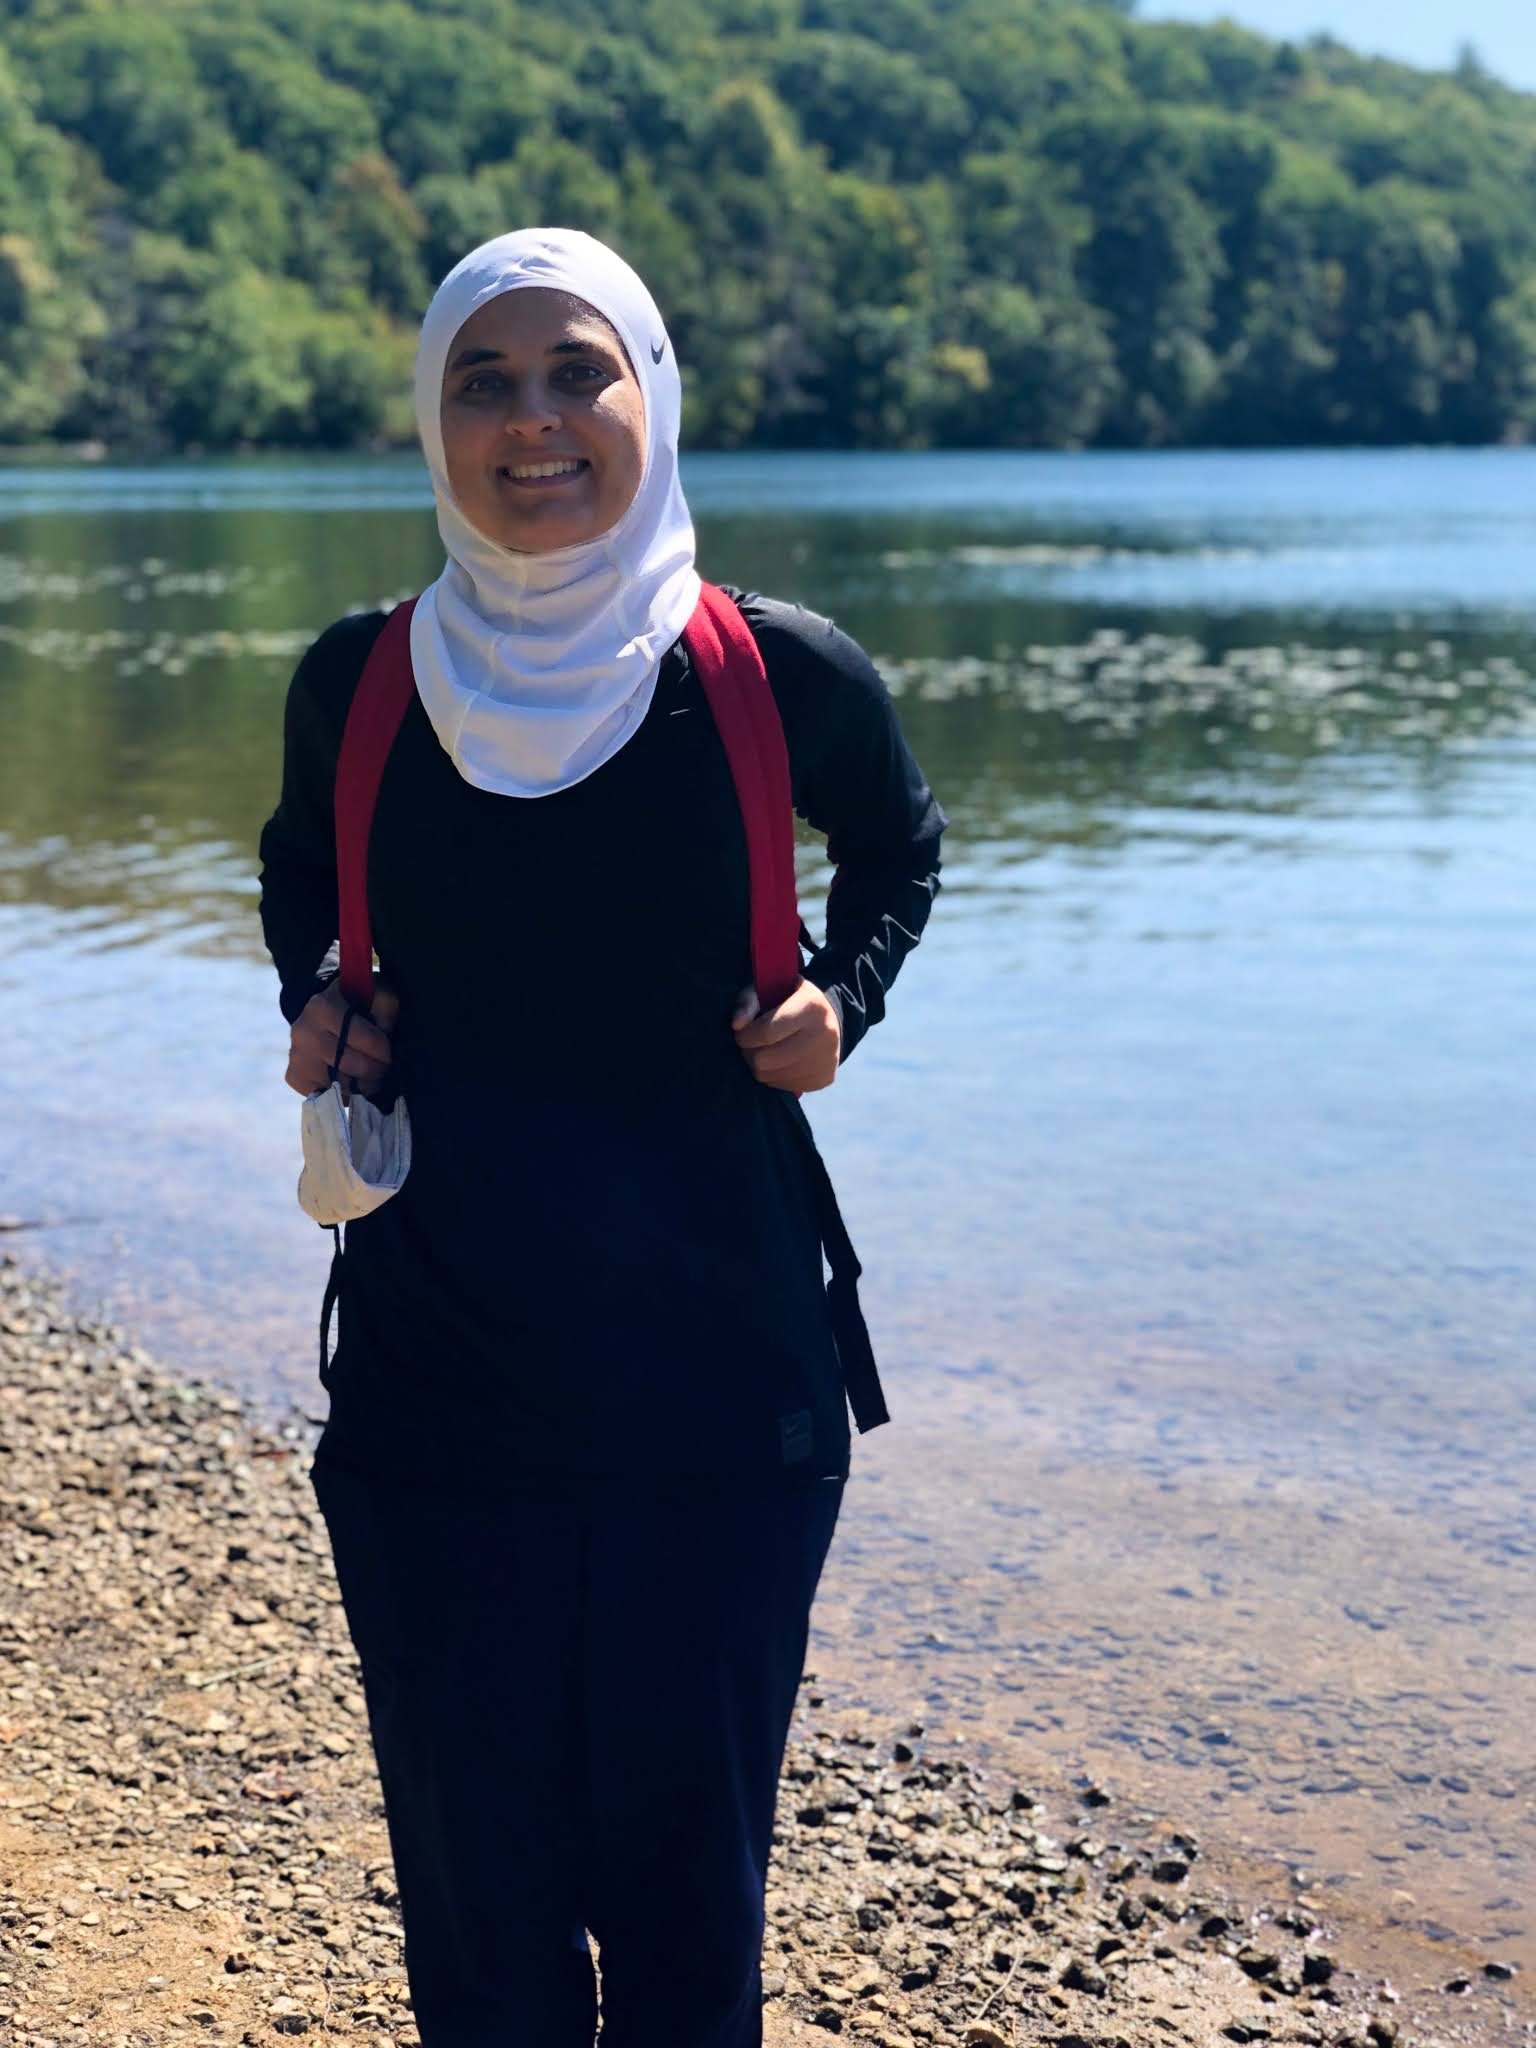 Sahara at lake, nike white scarf, nike black shirt, blue joggers - smiling at camera.